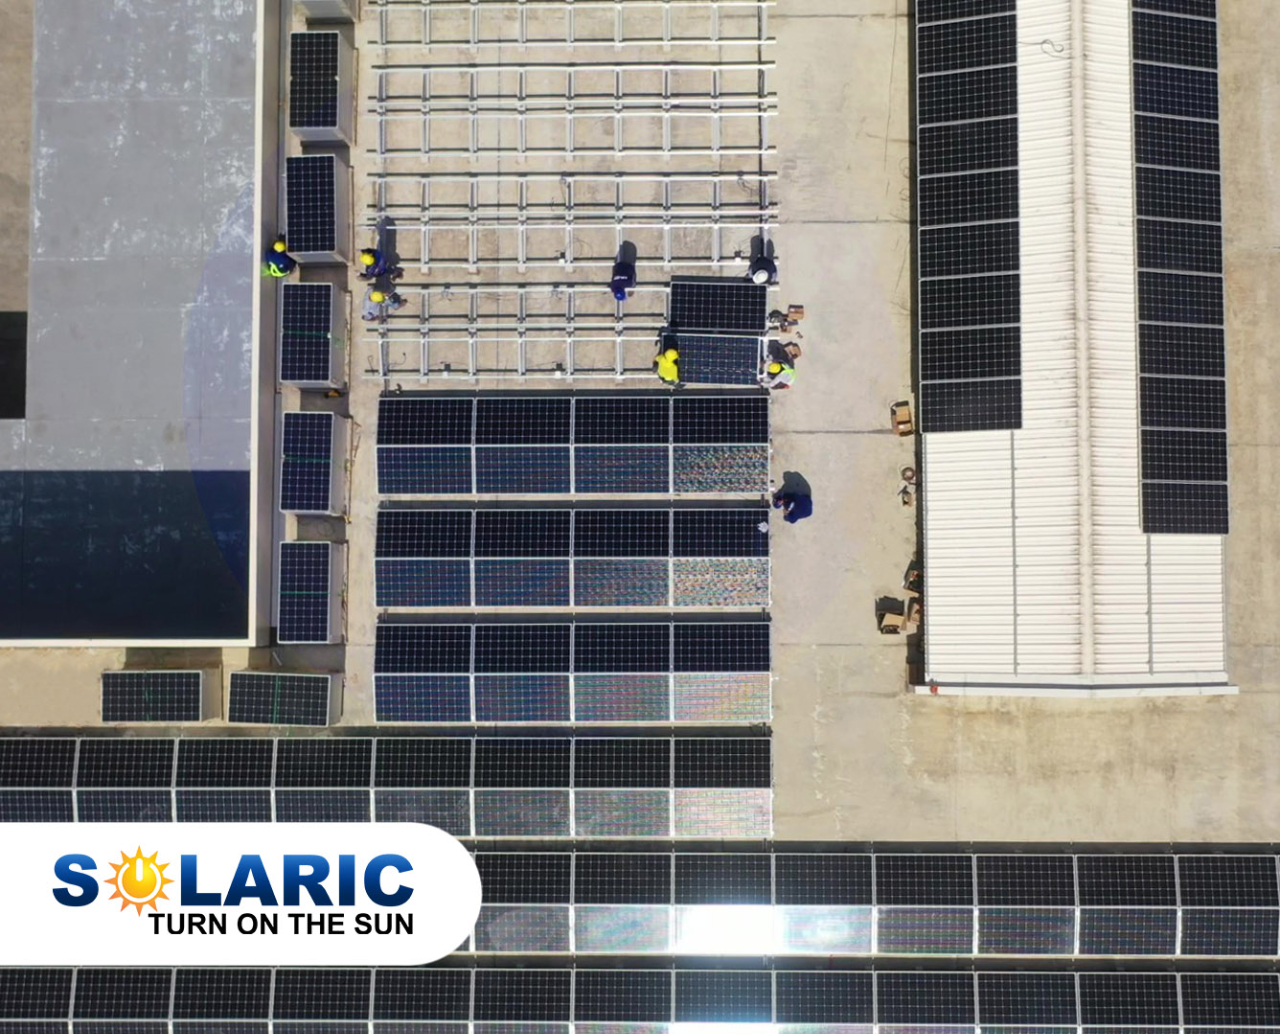 3 STEPS TO GOING SOLAR: EASY AND SIMPLE WITH SOLARIC